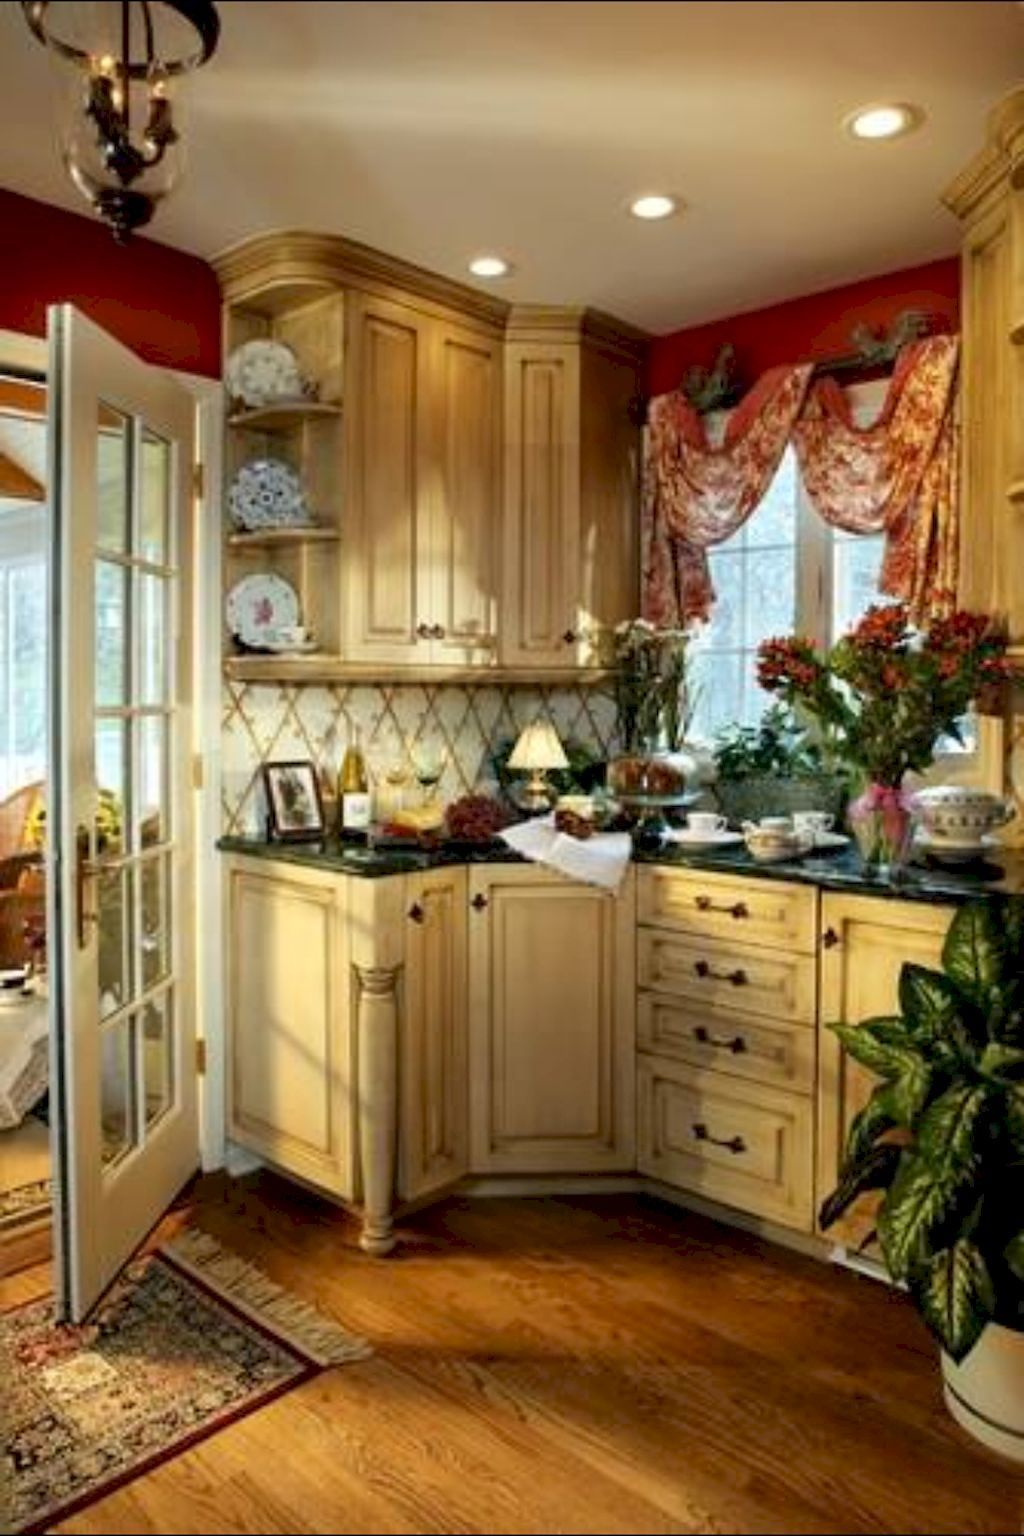 Best Modern French Country Kitchen Decorating Ideas 42 400 x 300